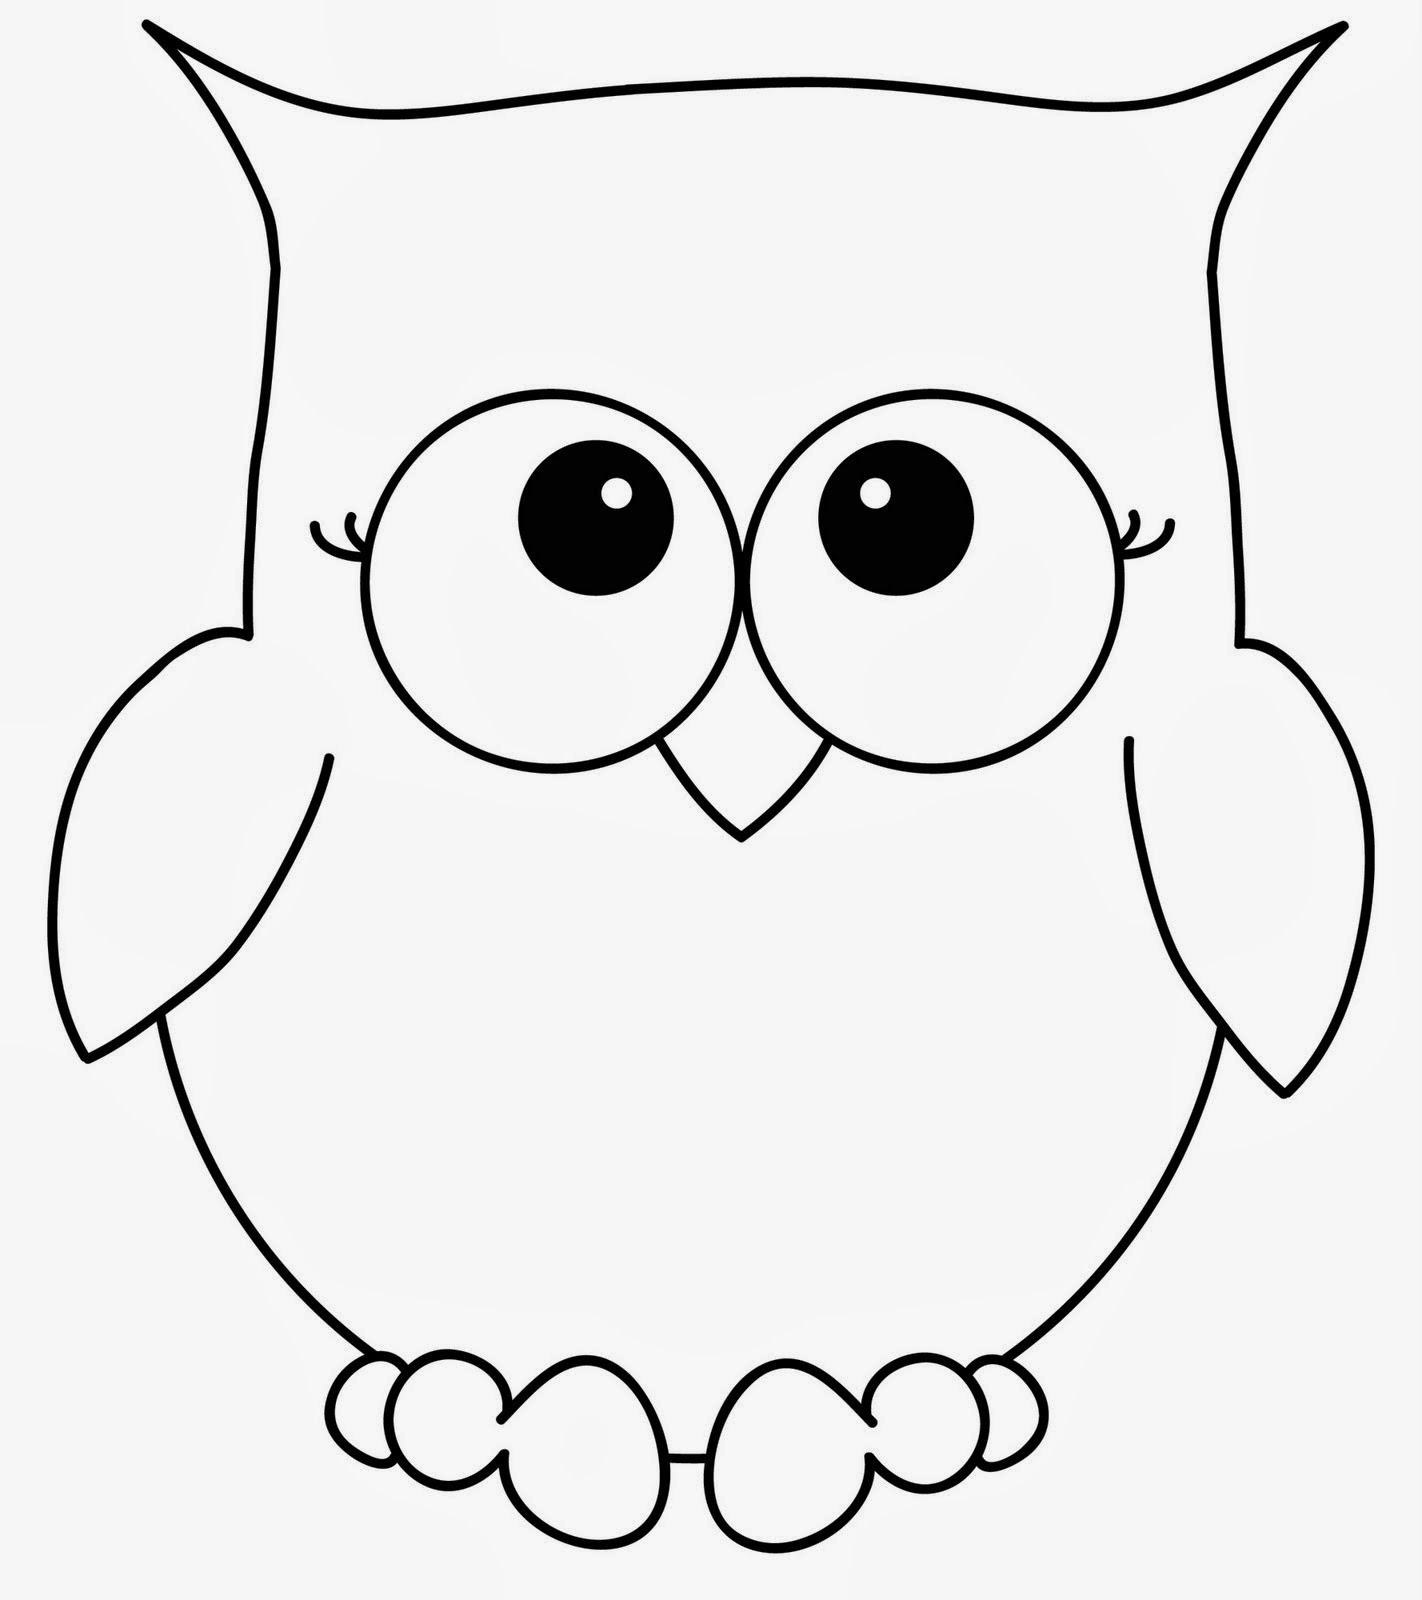 print owl pictures owl coloring pages for adults free detailed owl coloring pictures owl print 1 2